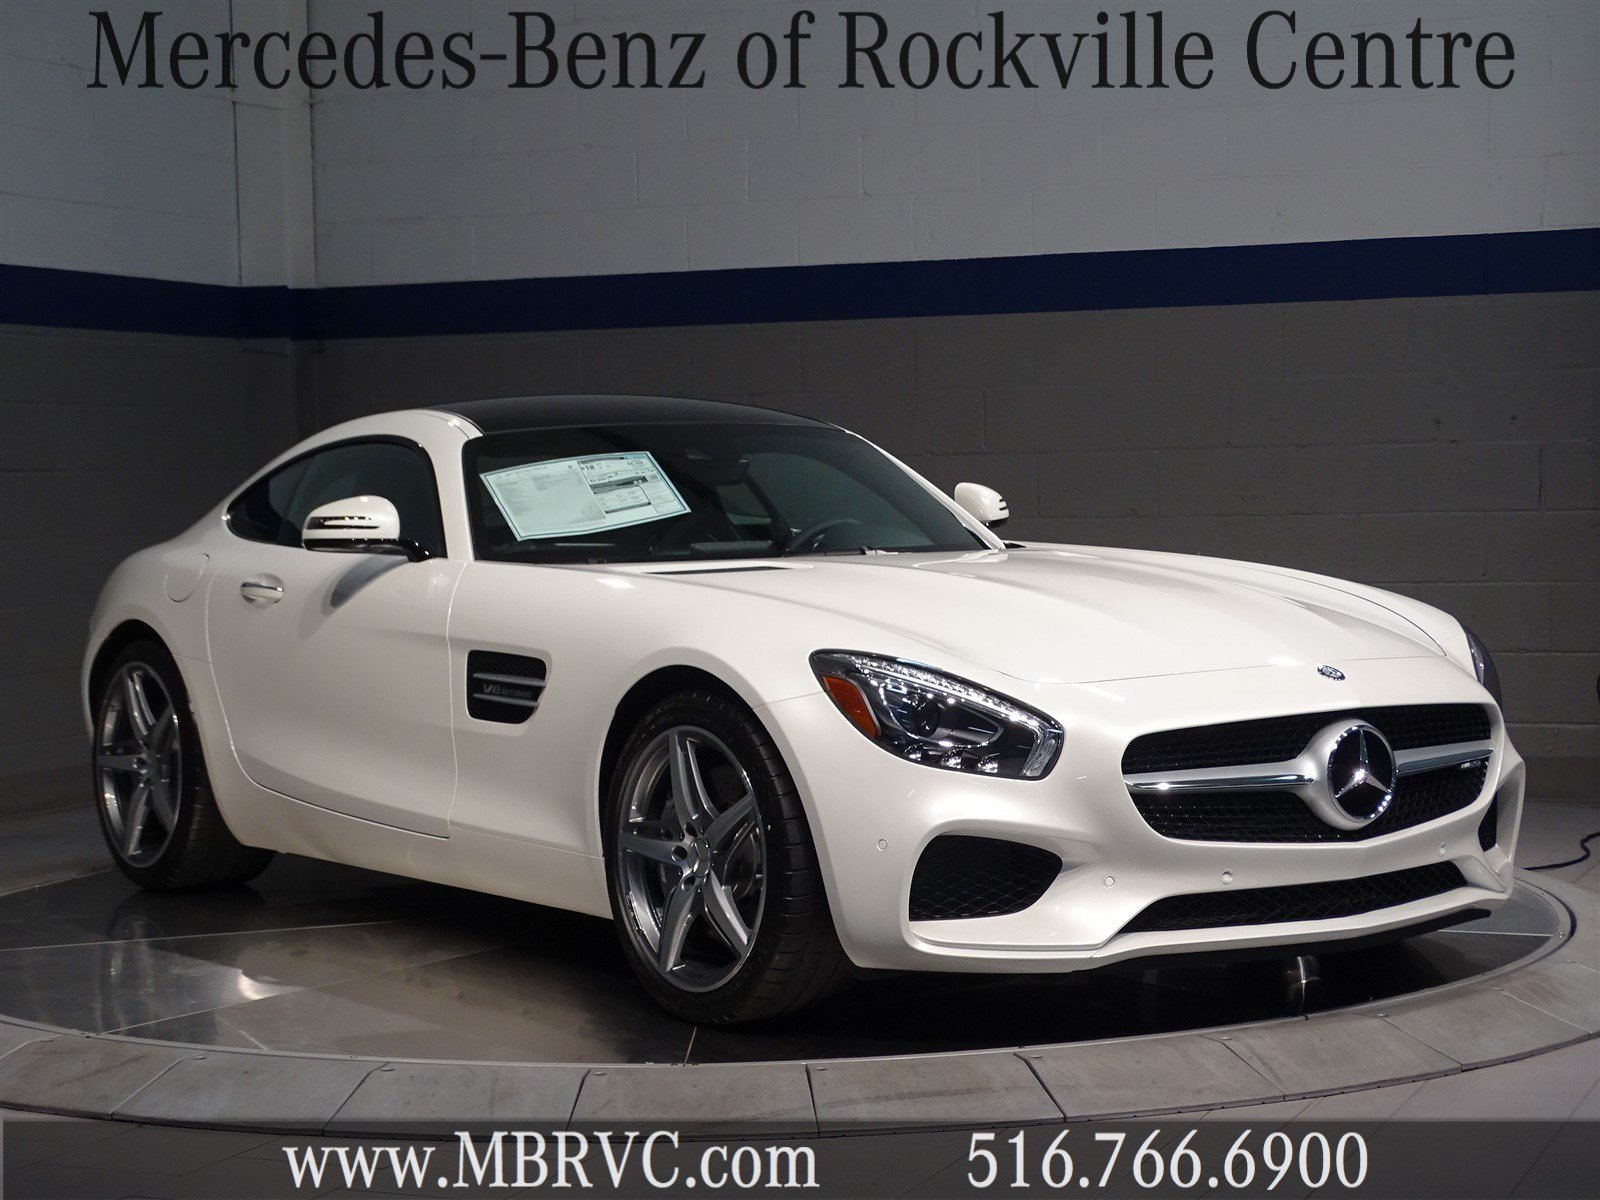 New 2017 mercedes benz amg gt amg gt coupe in rockville for 2017 mercedes benz amg gt msrp